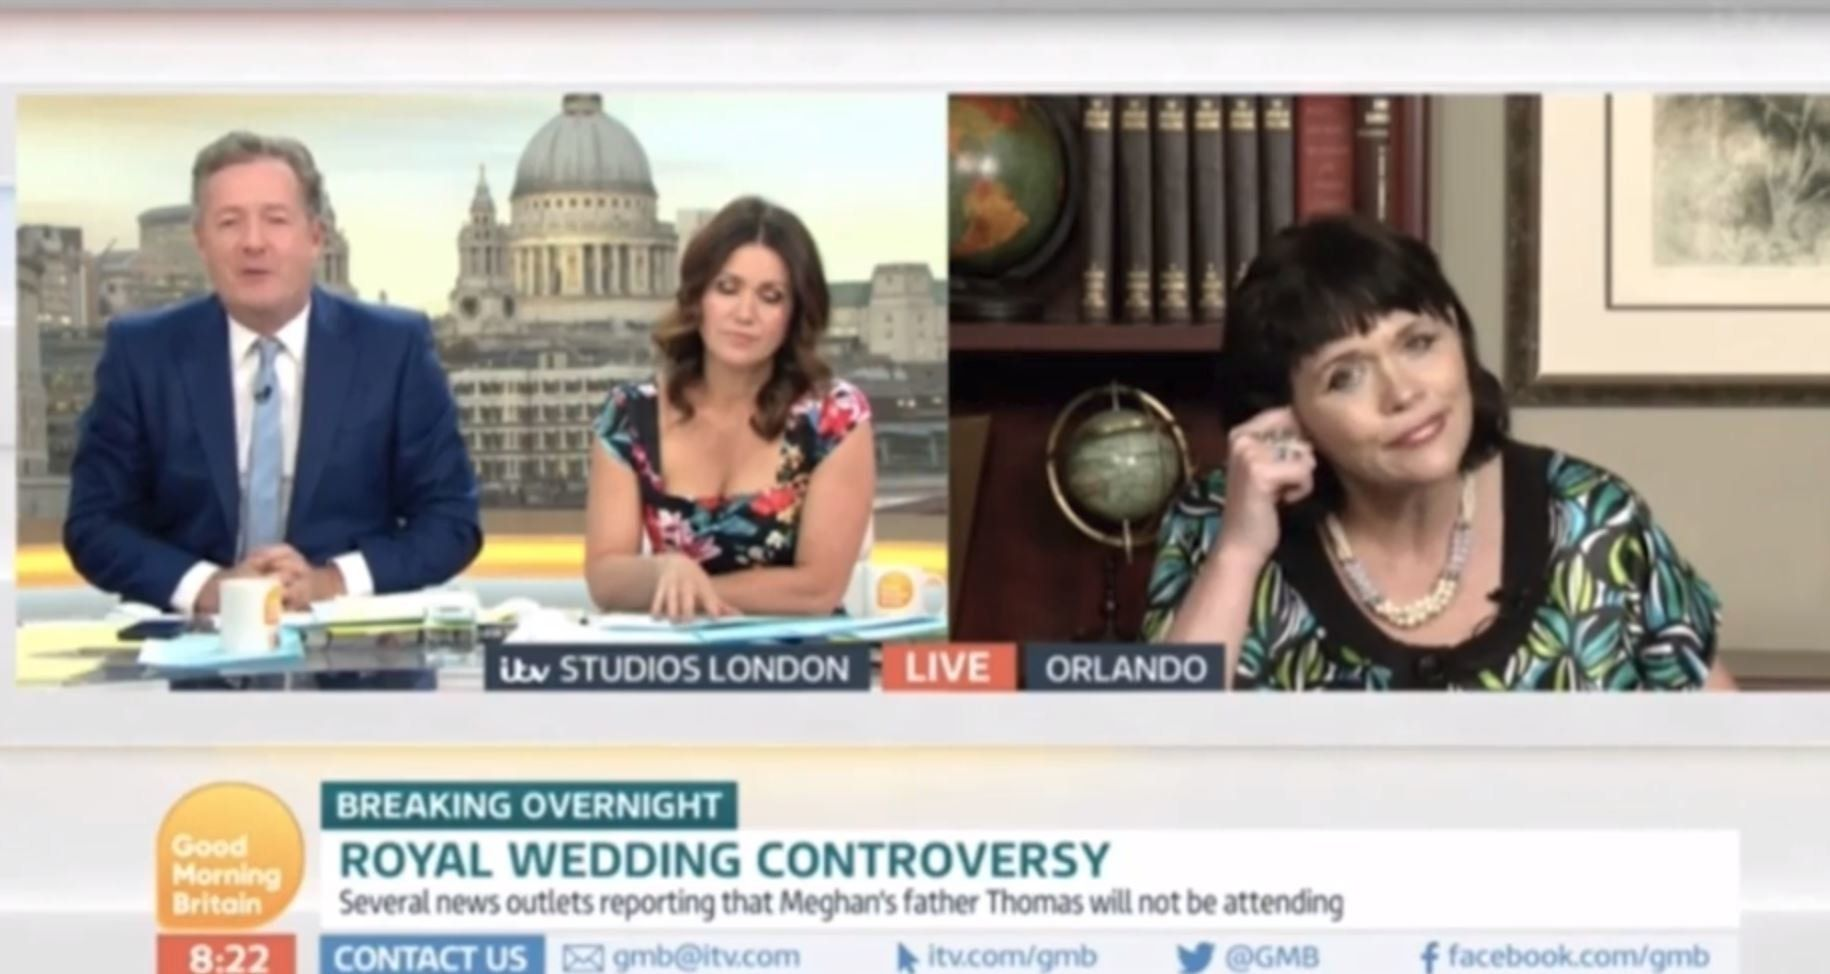 Piers Morgan Brands Meghan Markle's Half-Sister A 'Media Vulture' In 'Good Morning Britain'